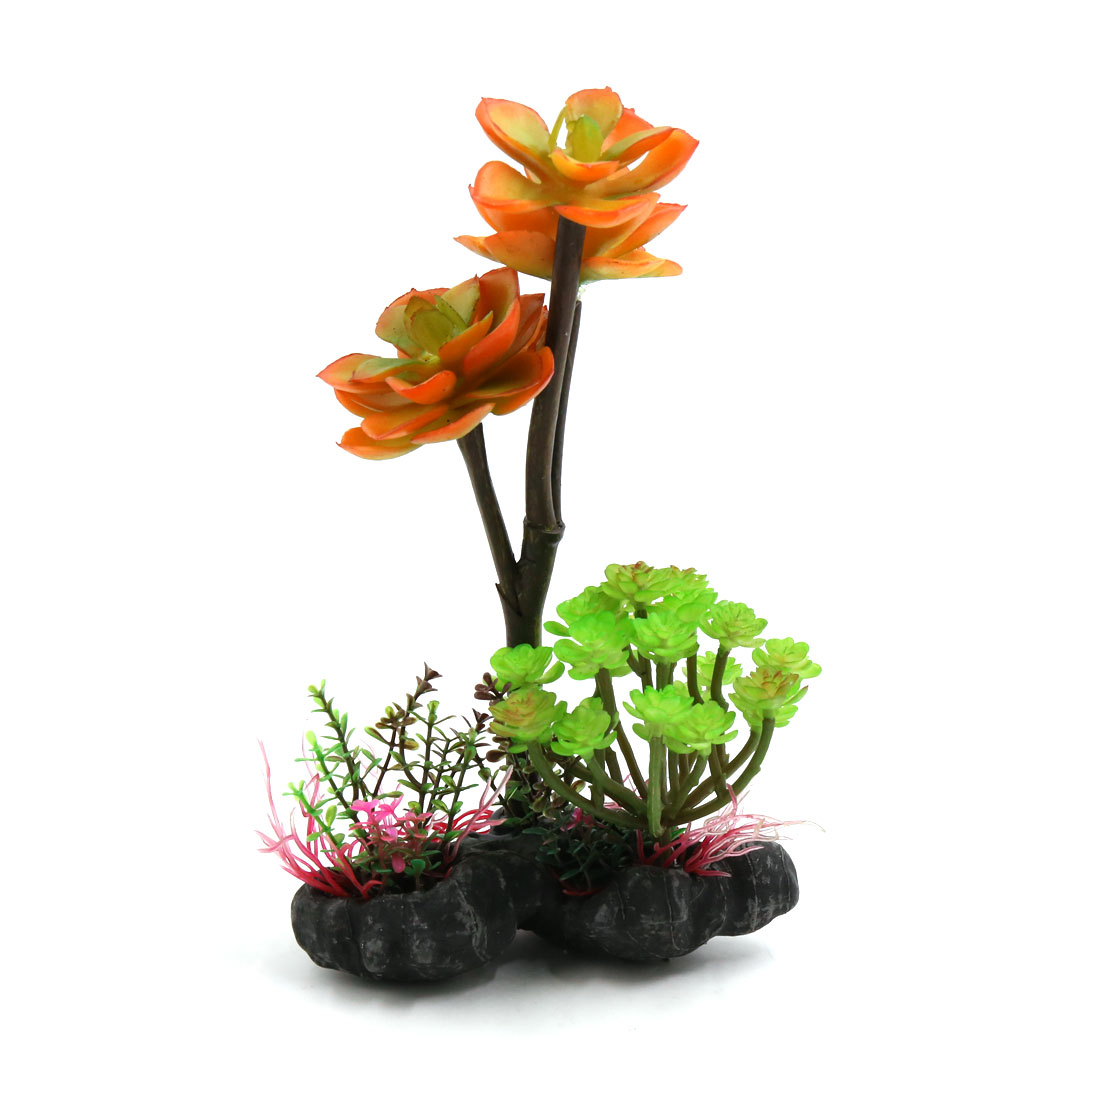 Plastic Terrarium Flowers Plants Decor Landscape for Reptiles w Ceramic Base